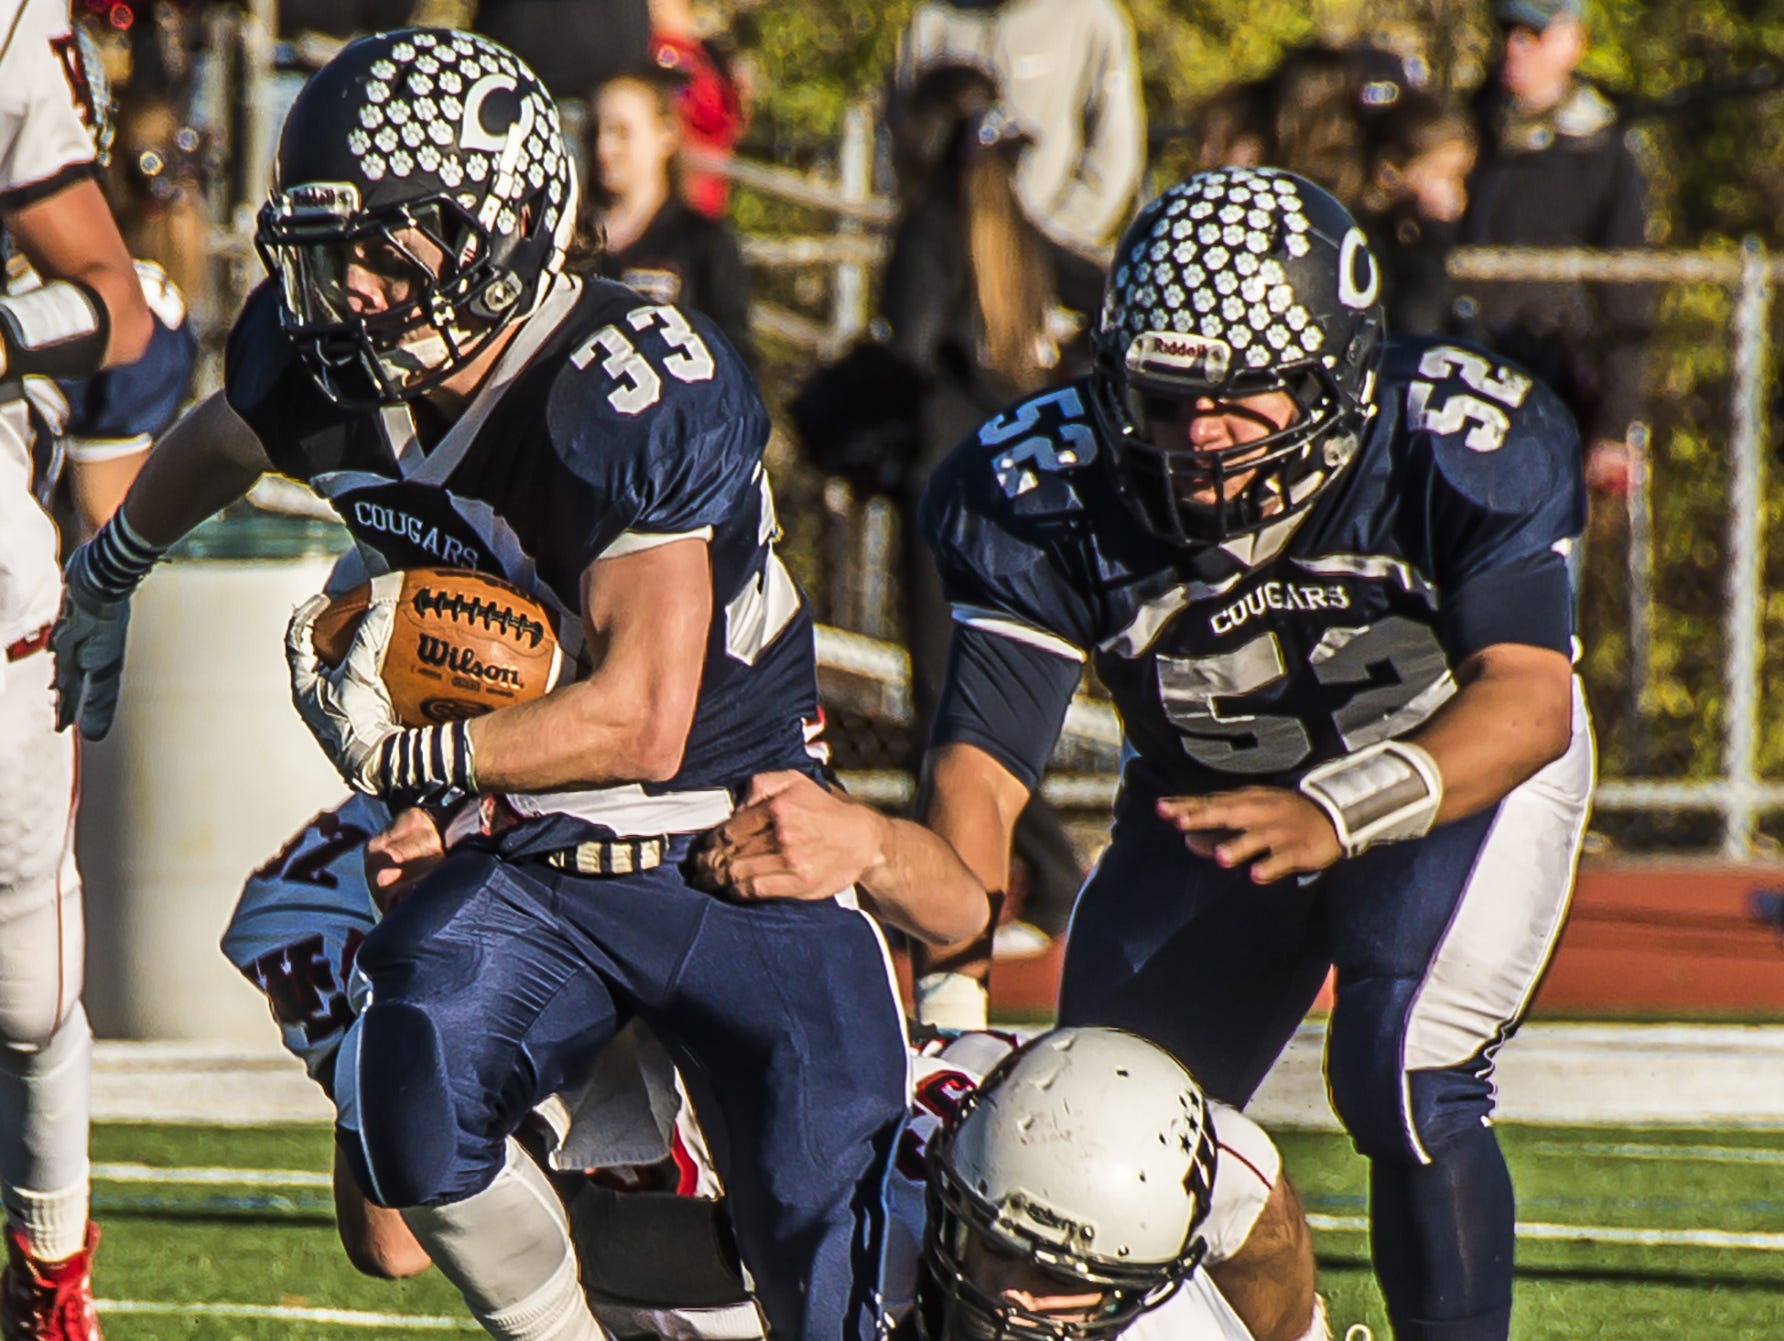 Chatham's Justin Hayes (33) is caught from behind by West Essex defenders Anthone Leone (33) and Timothy Kitchen (52) at the NJSIAA North 2 Group III West Essex at Chatham football game at Chatham, November 21, 2015. (Photo by Warren Westura for the Daily Record)